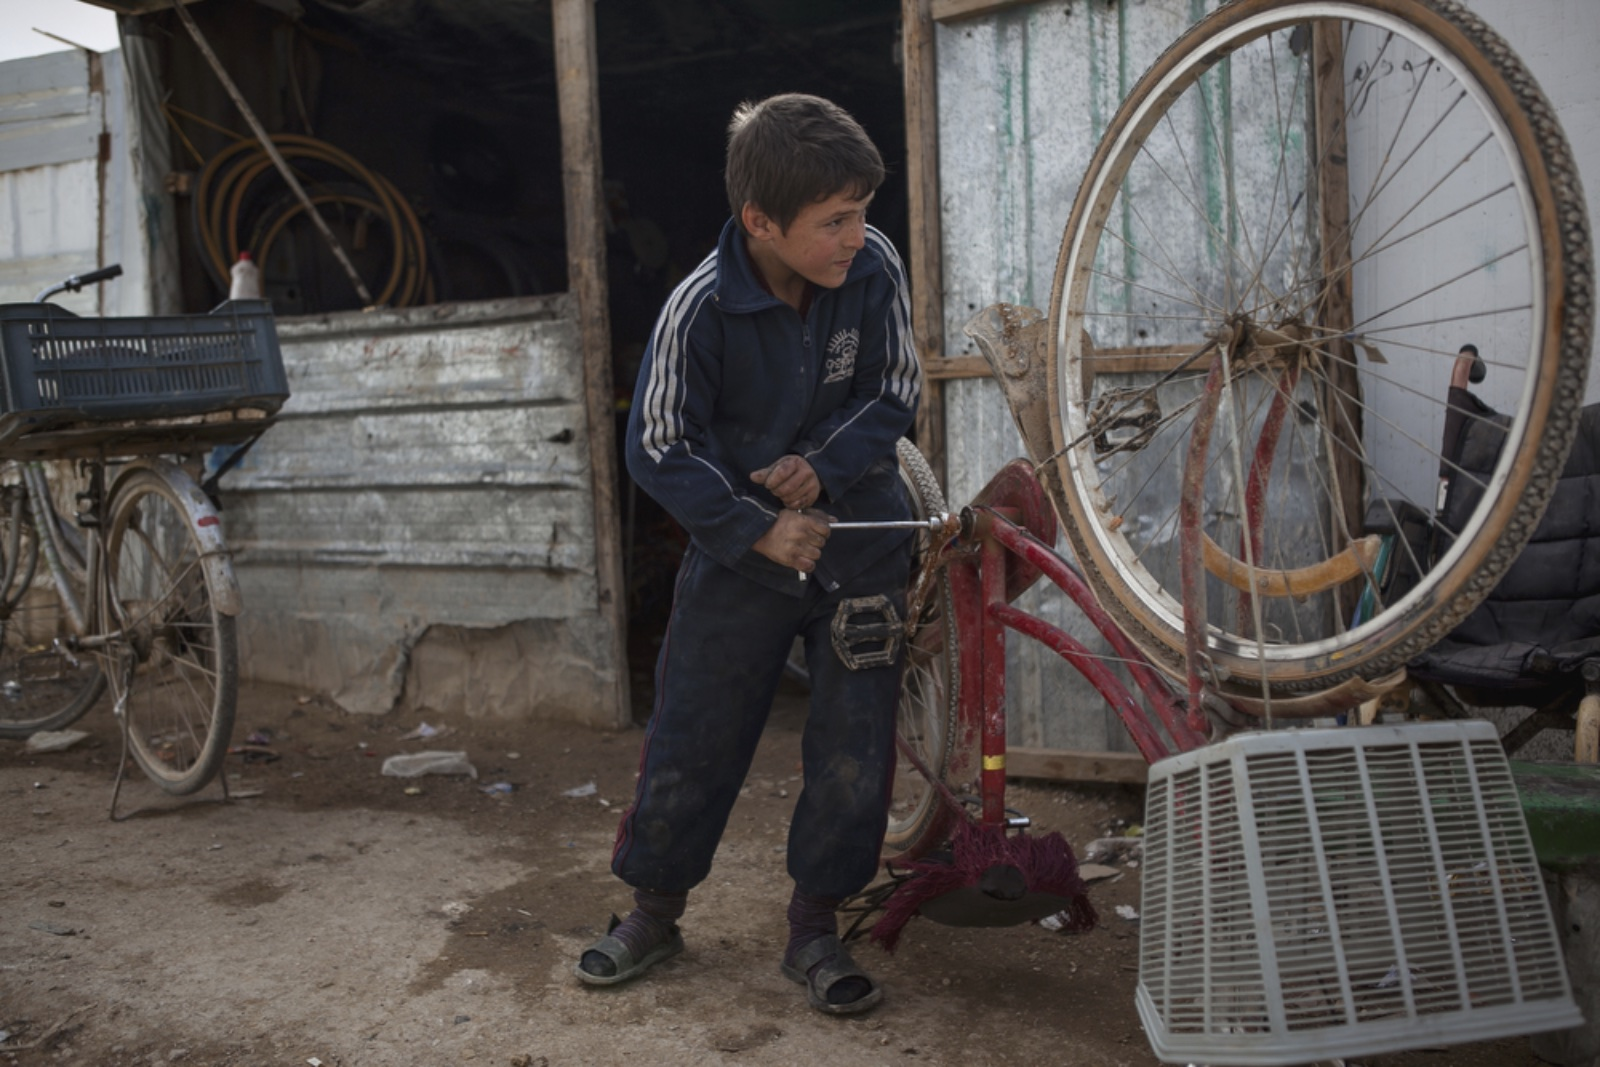 Ebraham Alatmia, 11, a Syrian refugee from Daraa, fixes a bicycle in a makeshift bike shop where he works in the main marketplace of Zaatari. (Christopher Lee/GroundTruth)